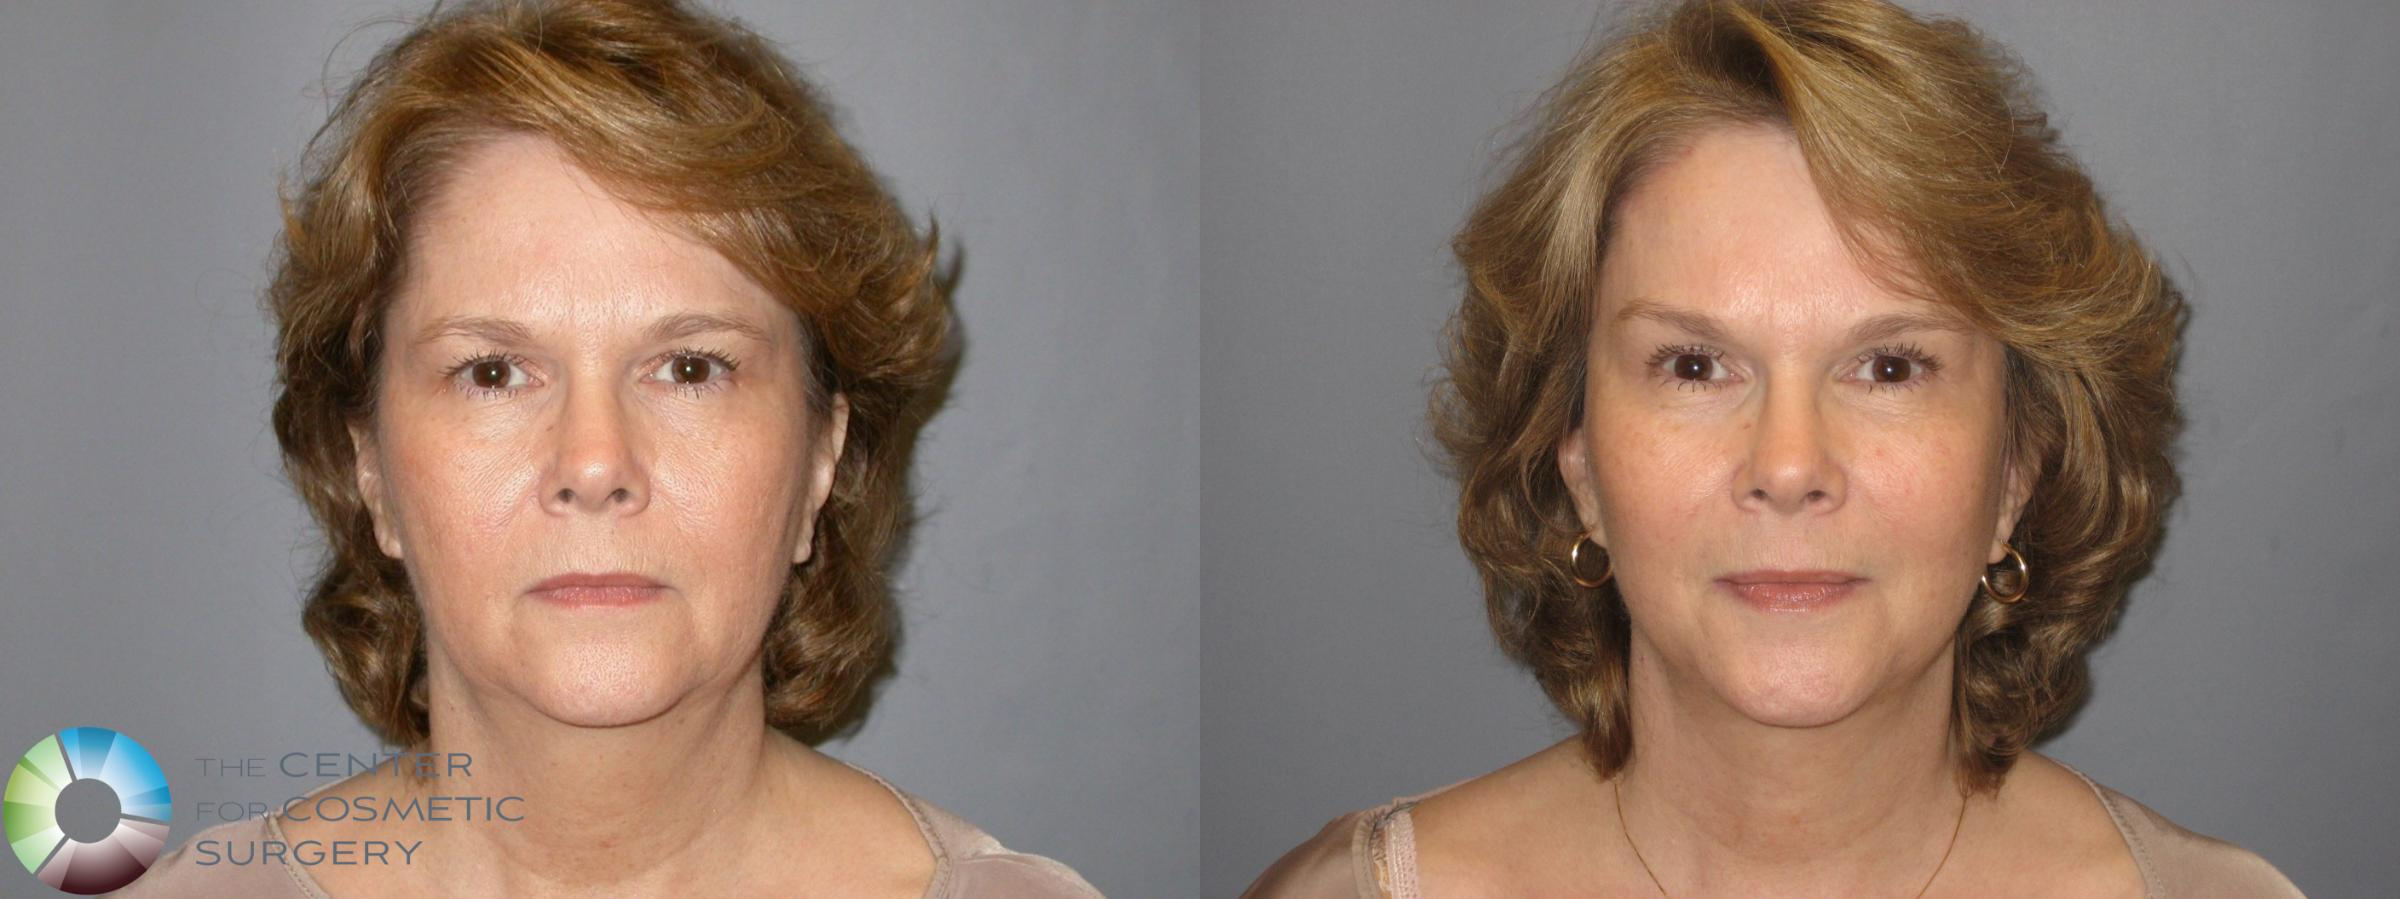 Mini Brow Lift Case 116 Before & After View #1 | Golden, CO | The Center for Cosmetic Surgery